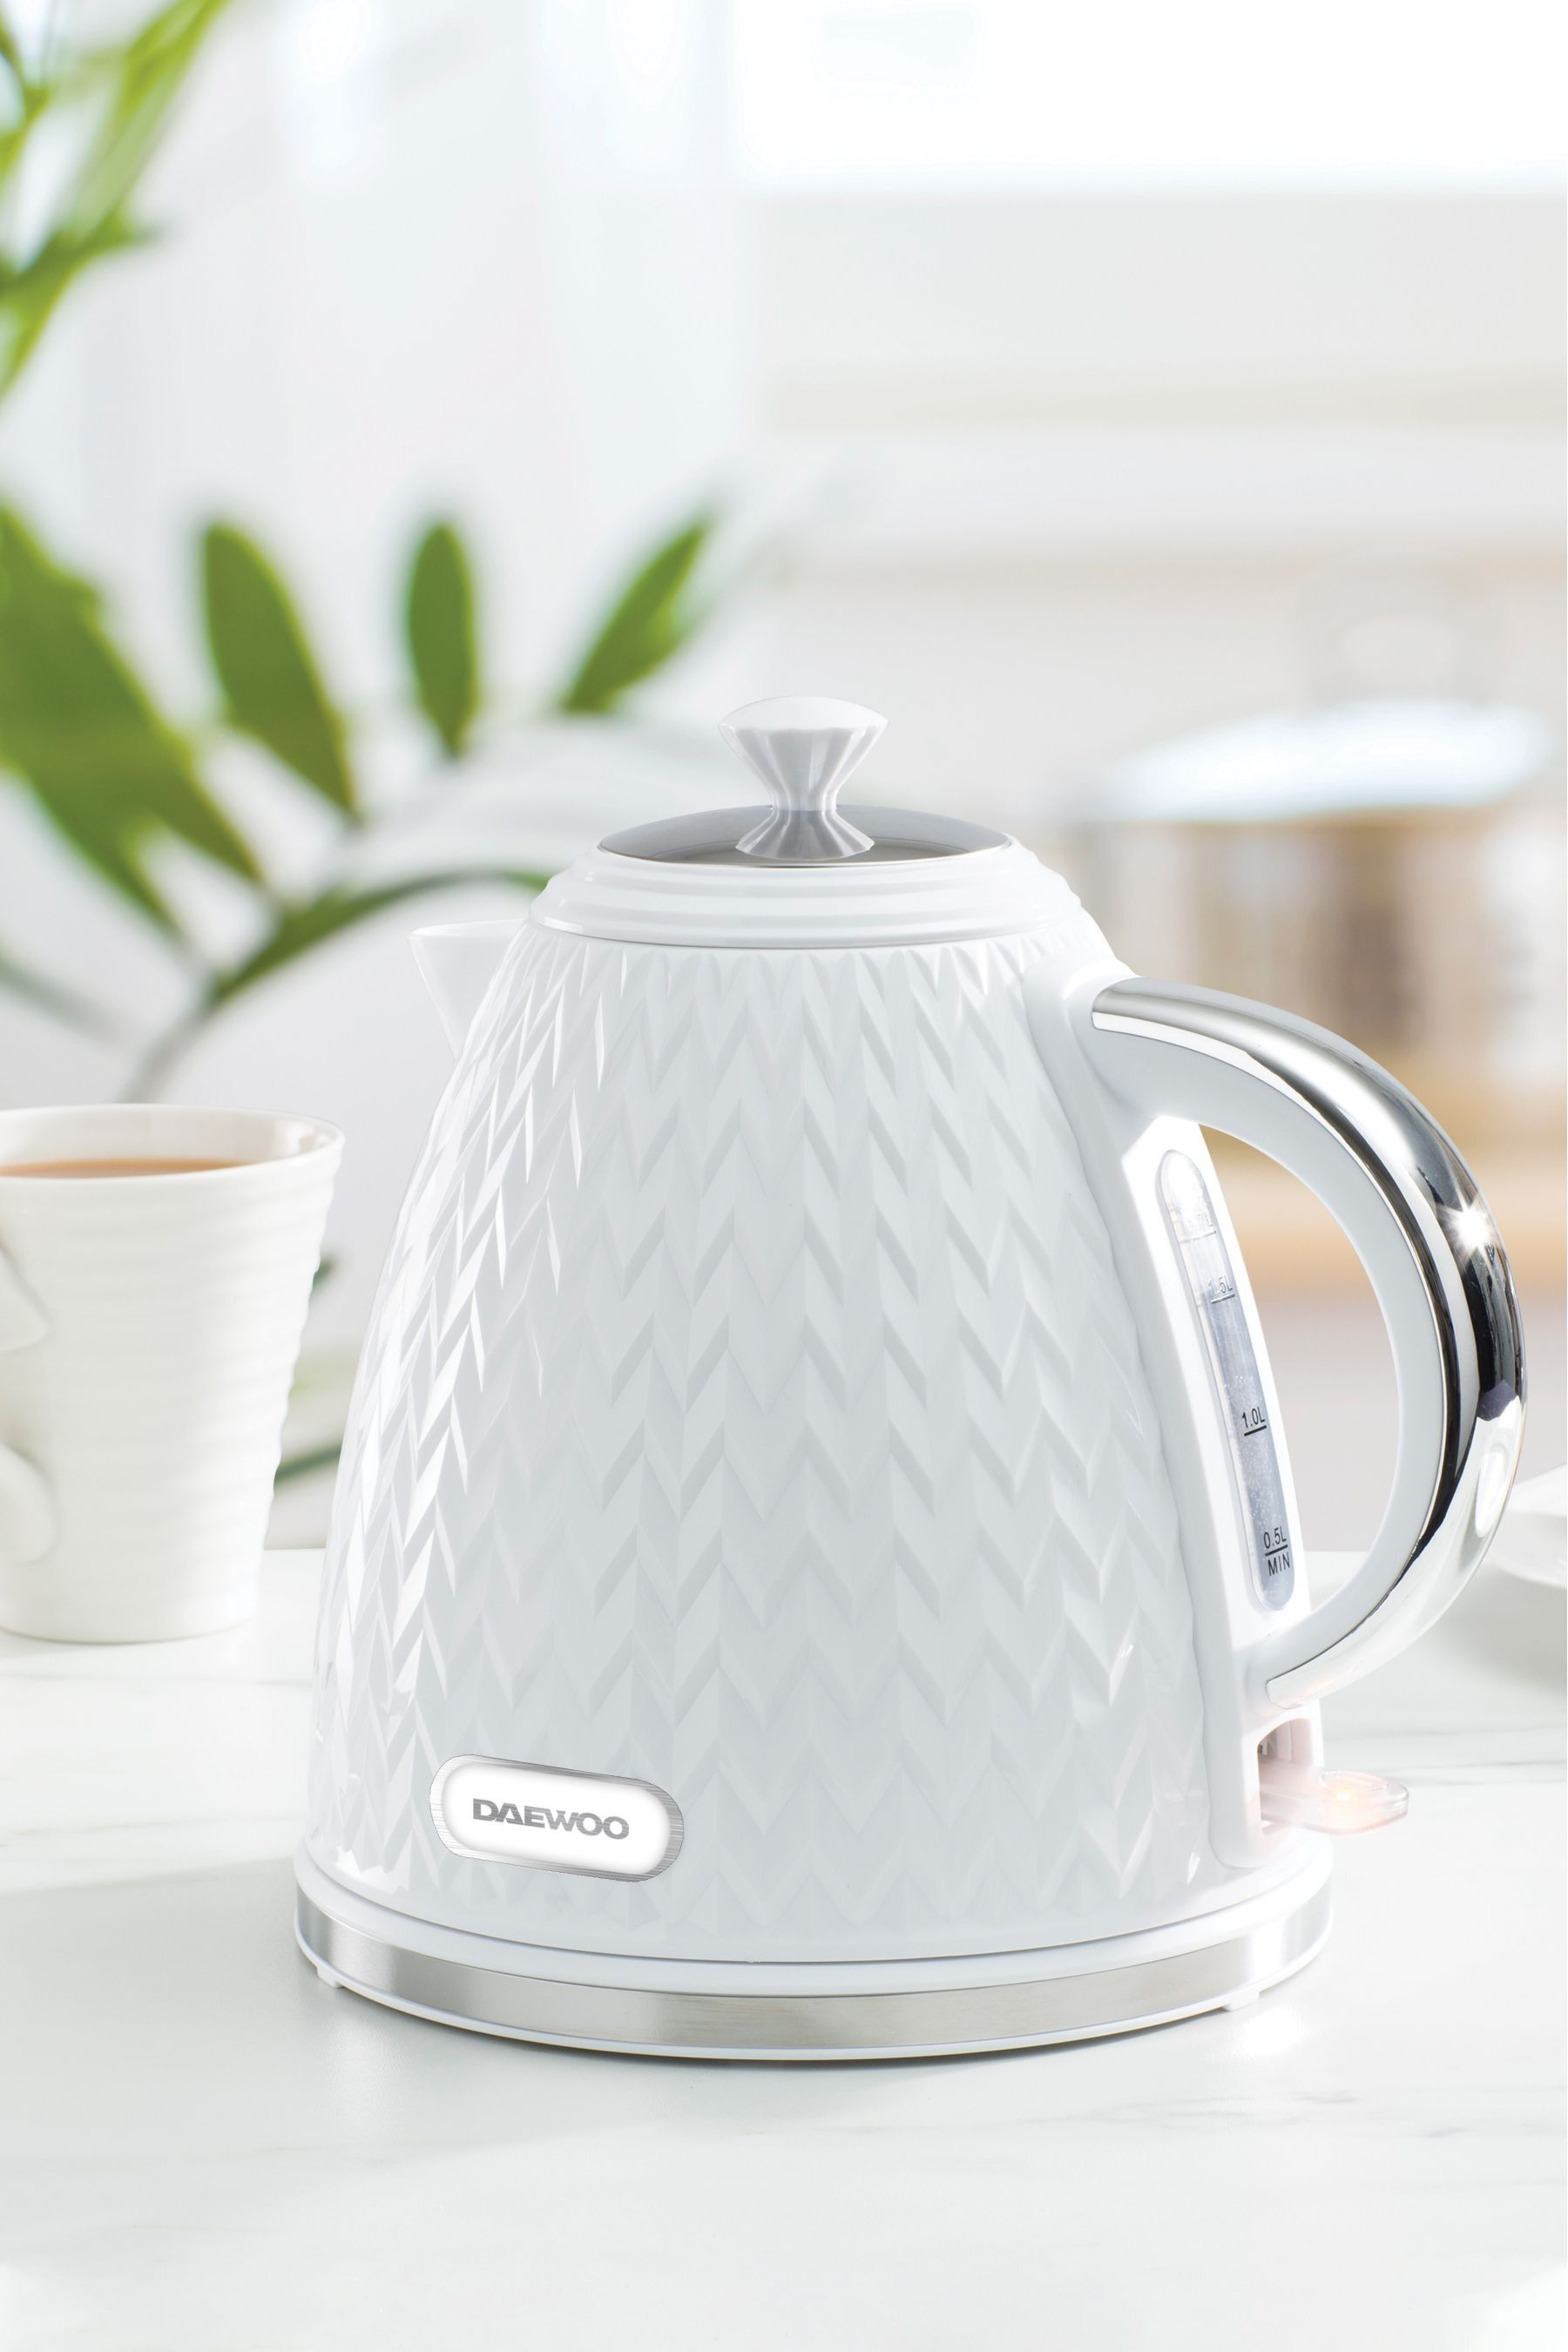 Buy Daewoo Argyle 1.7L Kettle from the